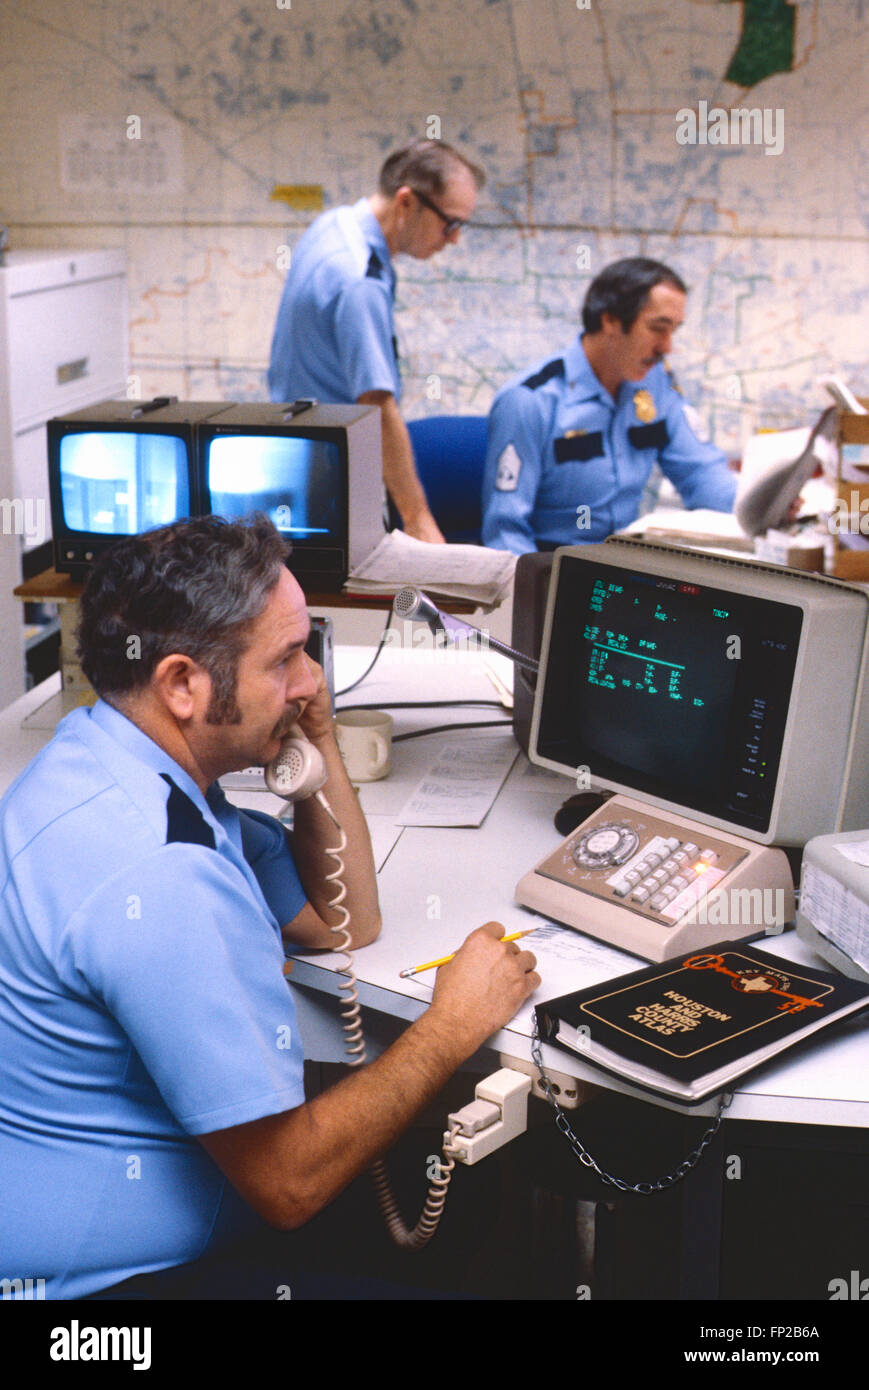 Houston Policeman at office computers and telephones - Stock Image